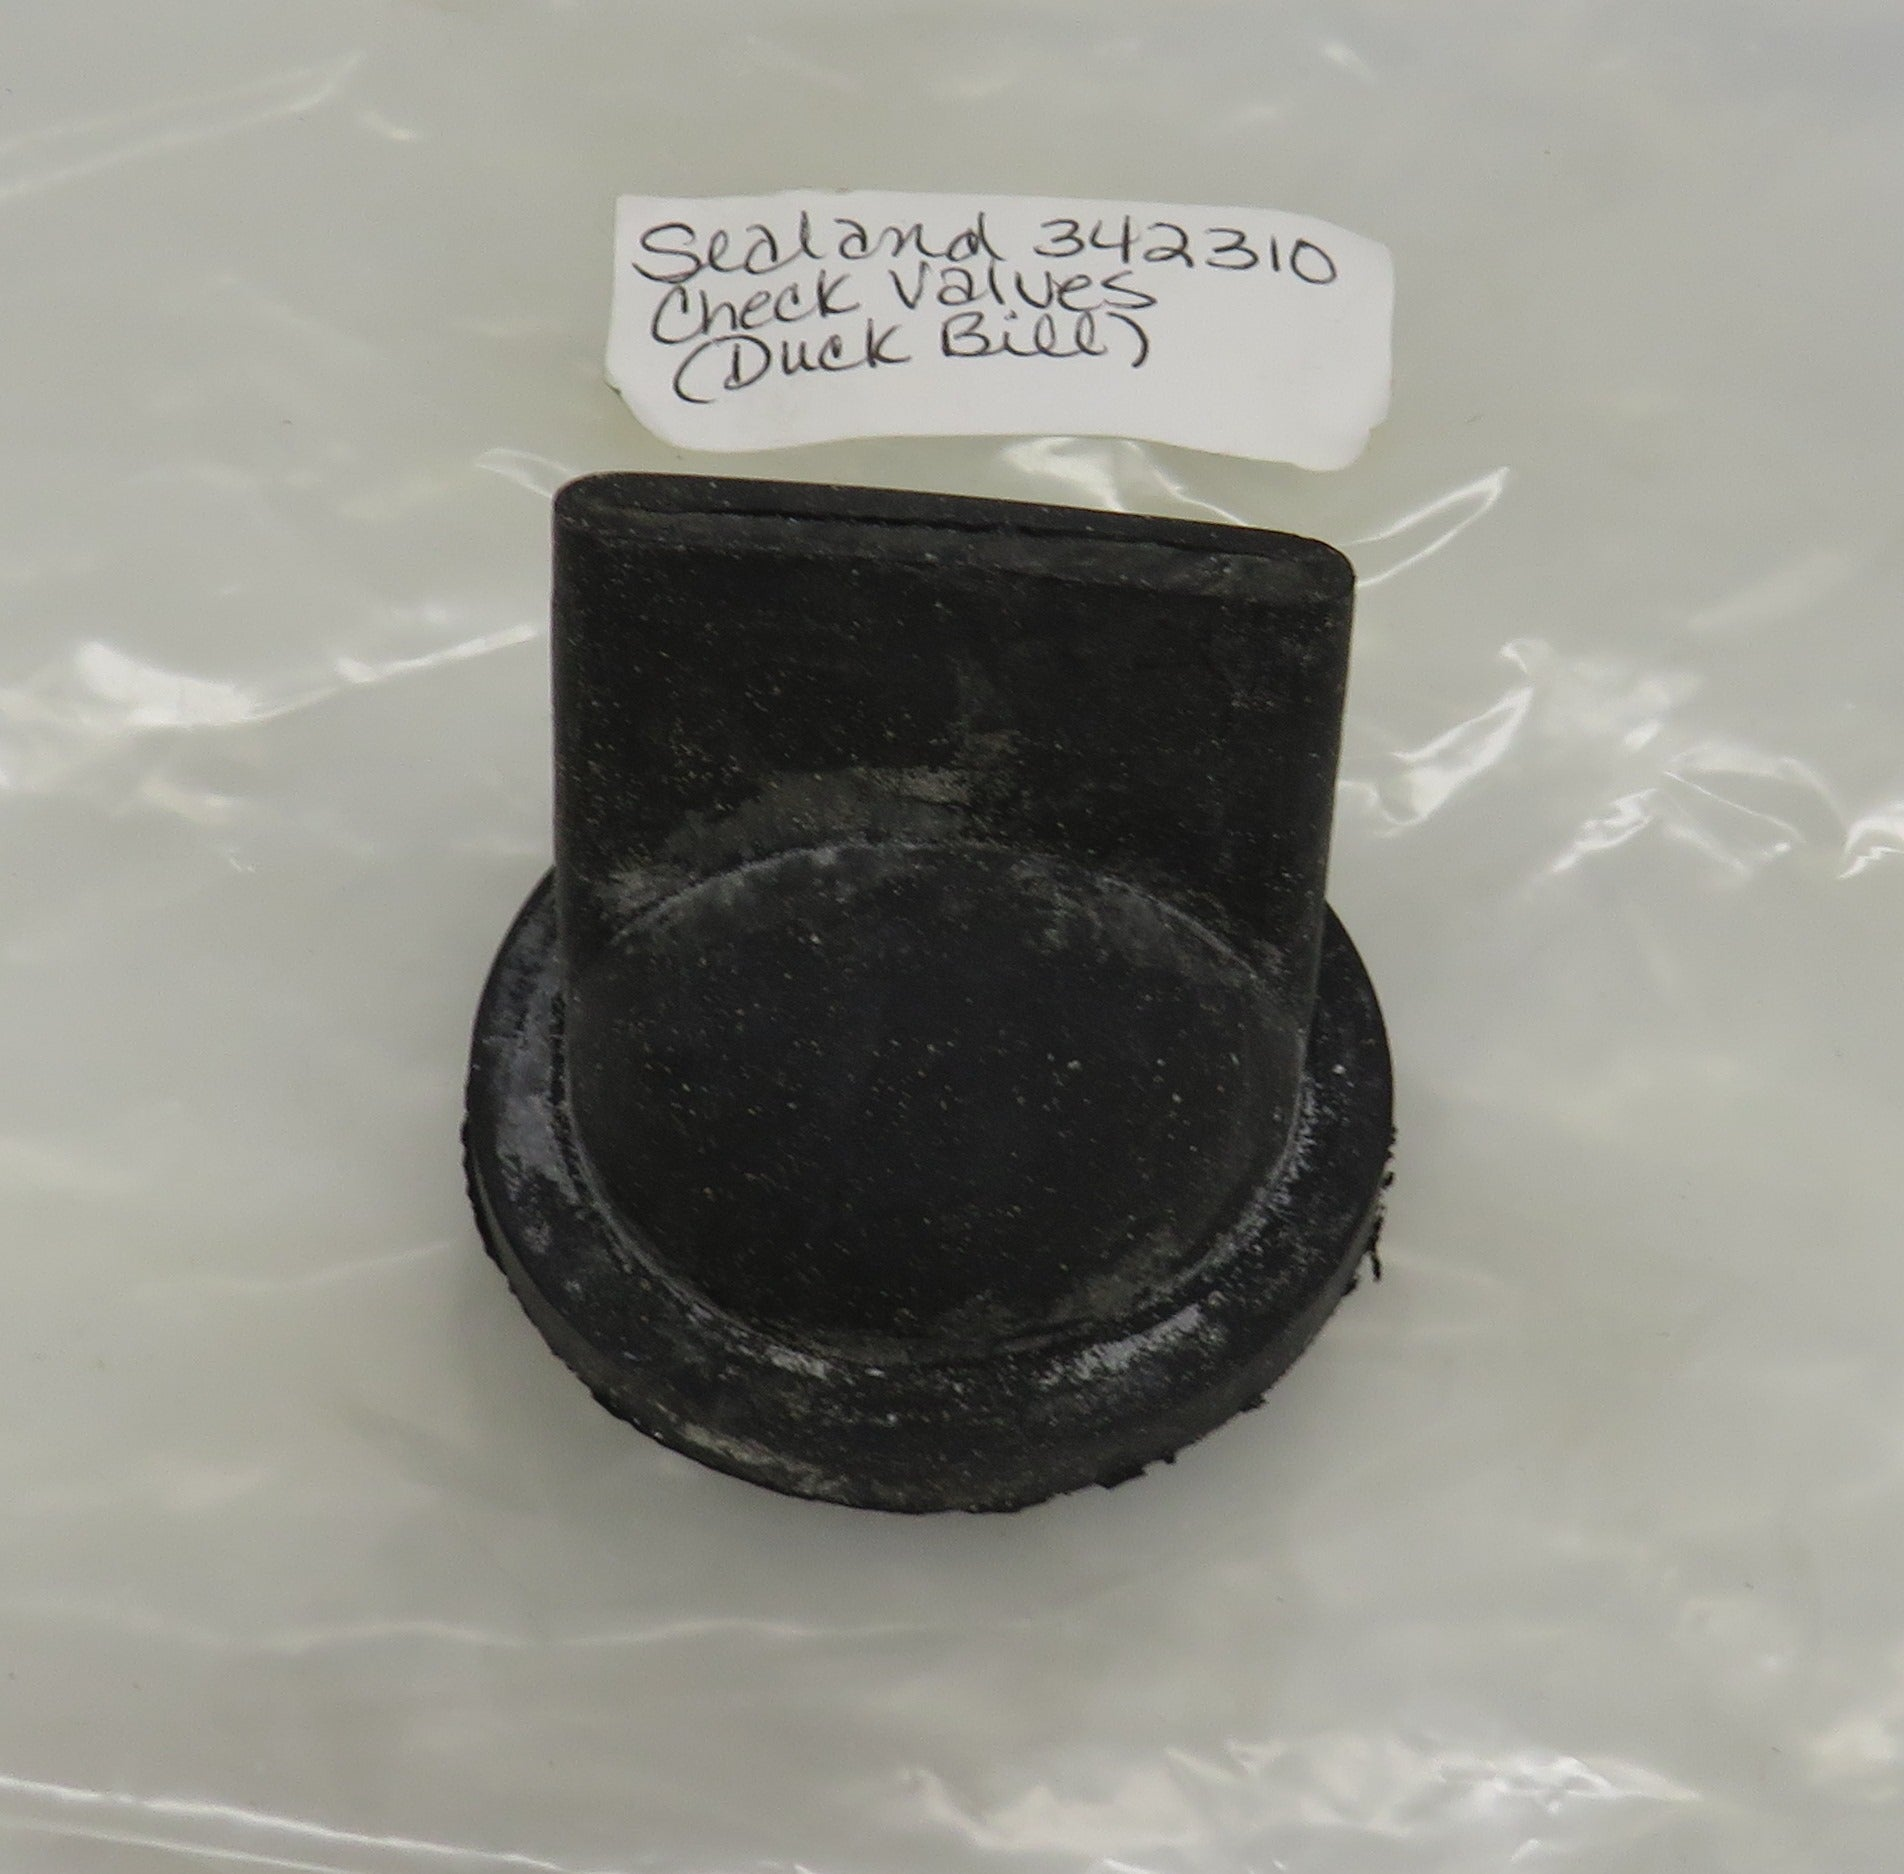 342310 Sealand Duck Bill (Check Valve) for Model 752 Manual Marine Toilet (OBSOLETE)